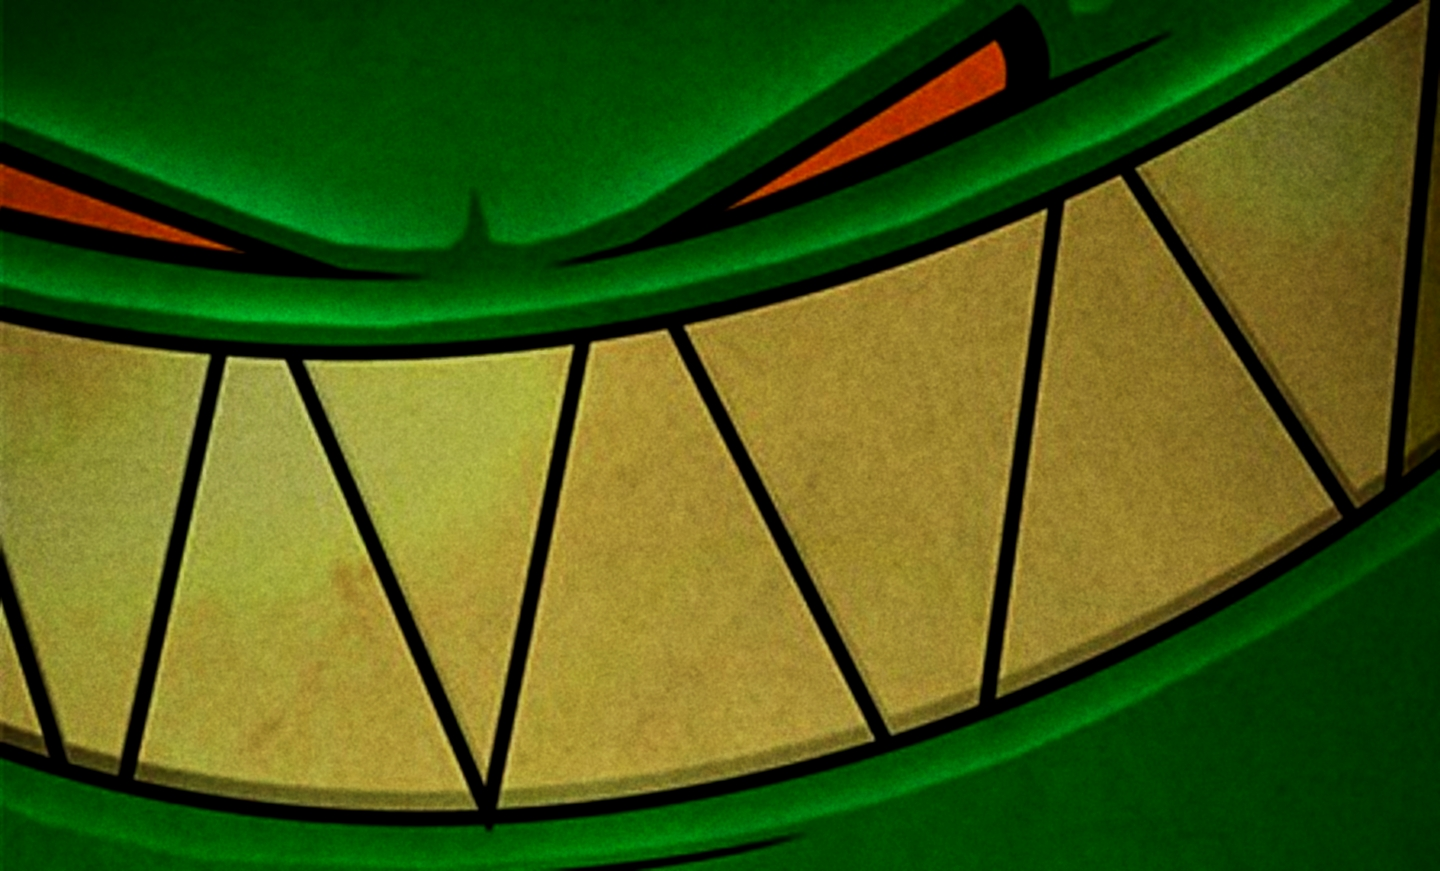 1440x871 - Feed Me Wallpapers 7